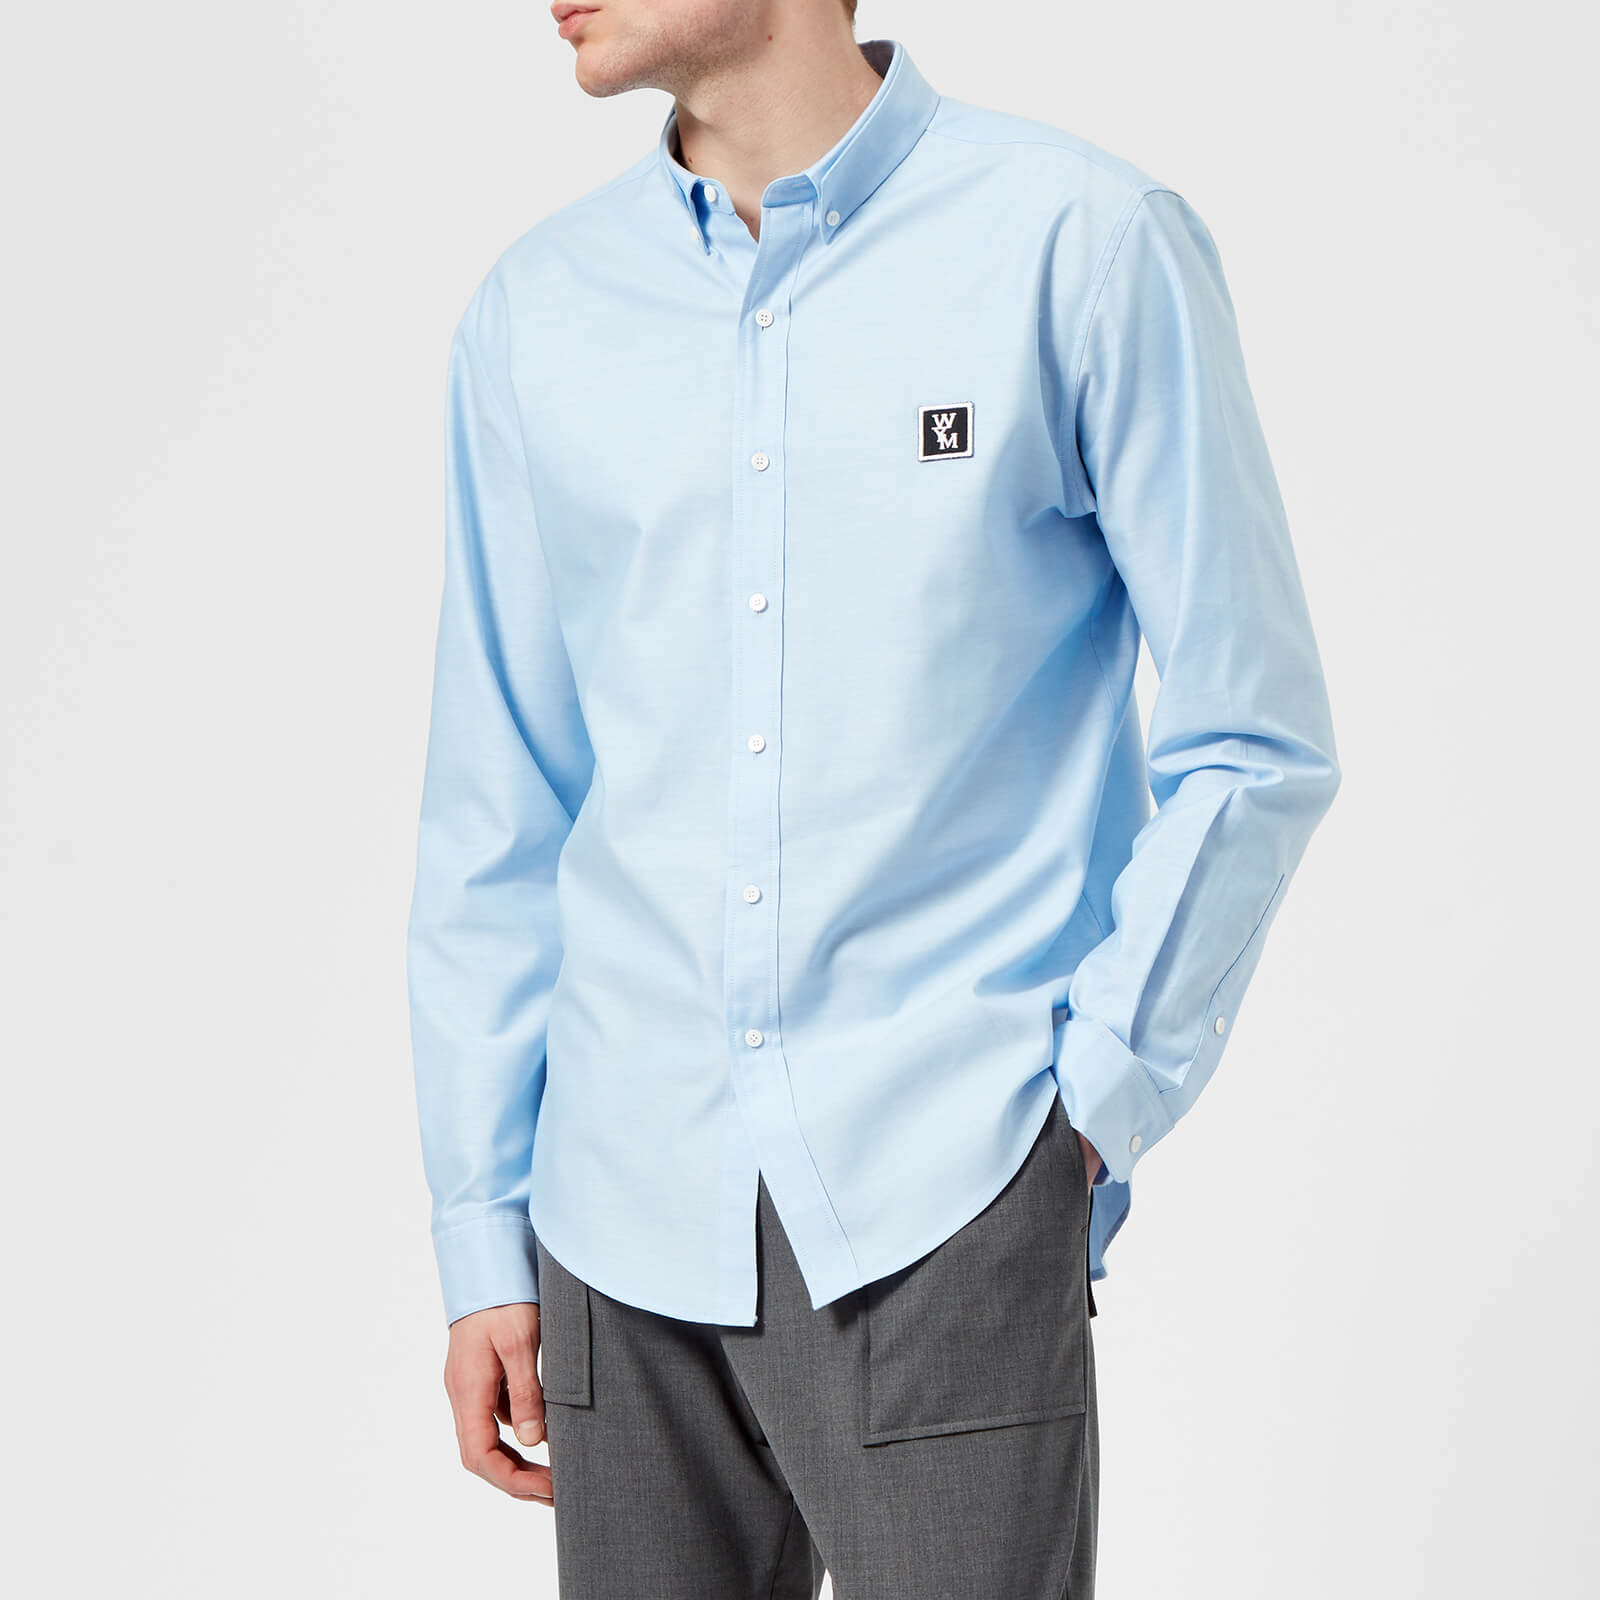 d7f12dfca20 Wooyoungmi Men s Button Down Oxford Shirt - Light Blue - Free UK Delivery  over £50